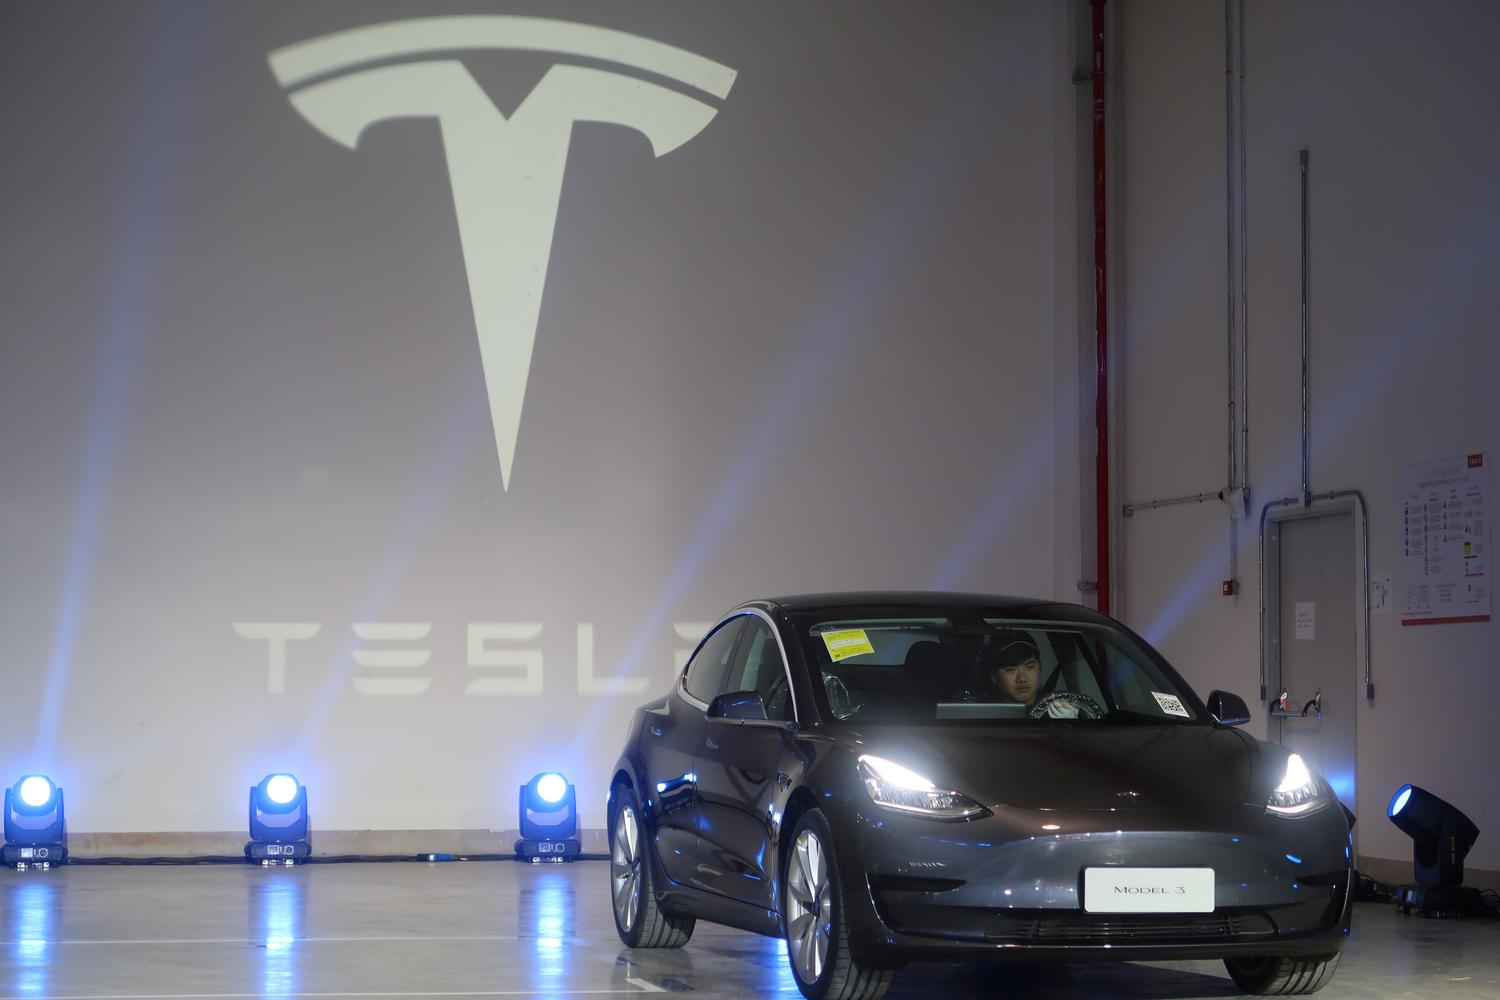 TESLA-CHINA/DELIVERY